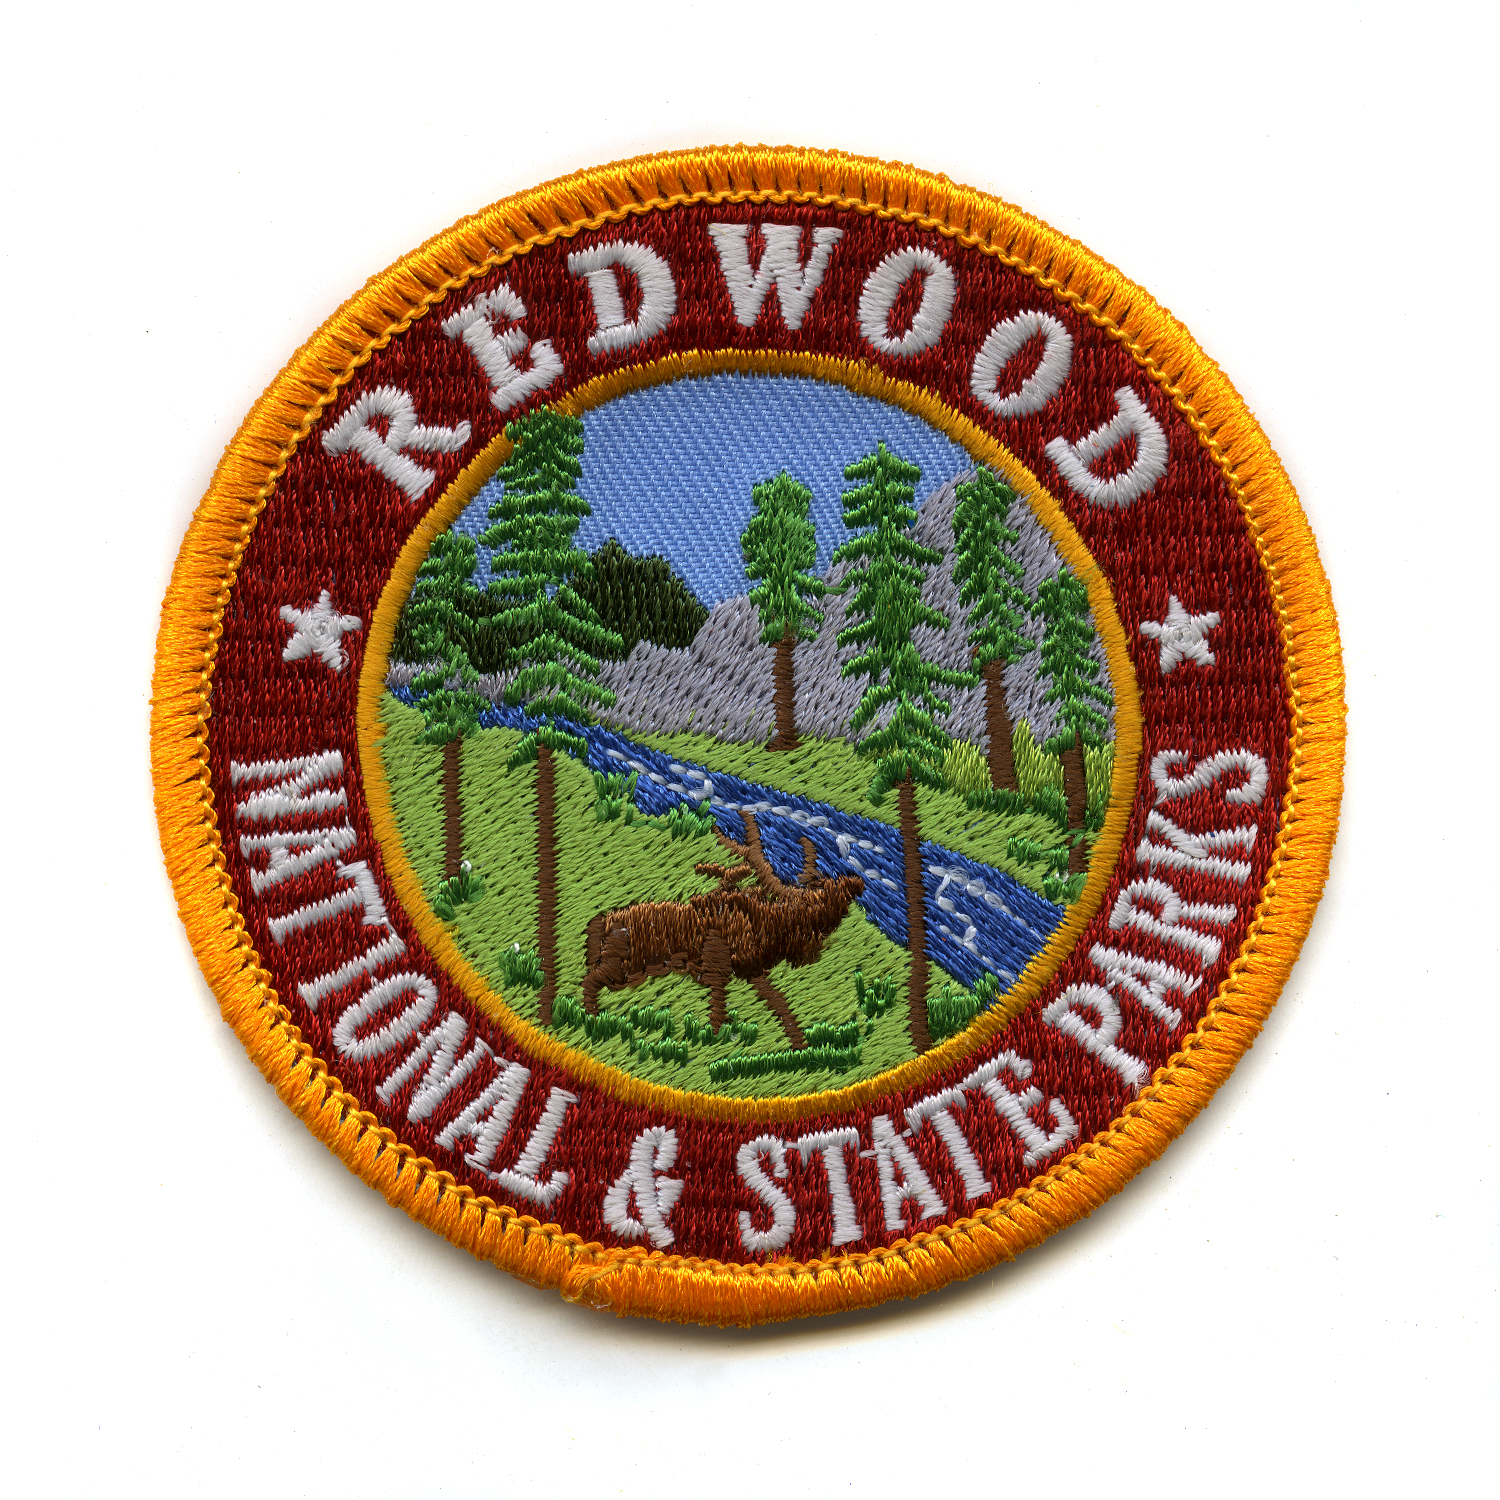 nps_patch_project_redwood_national_park_patch_2.jpg